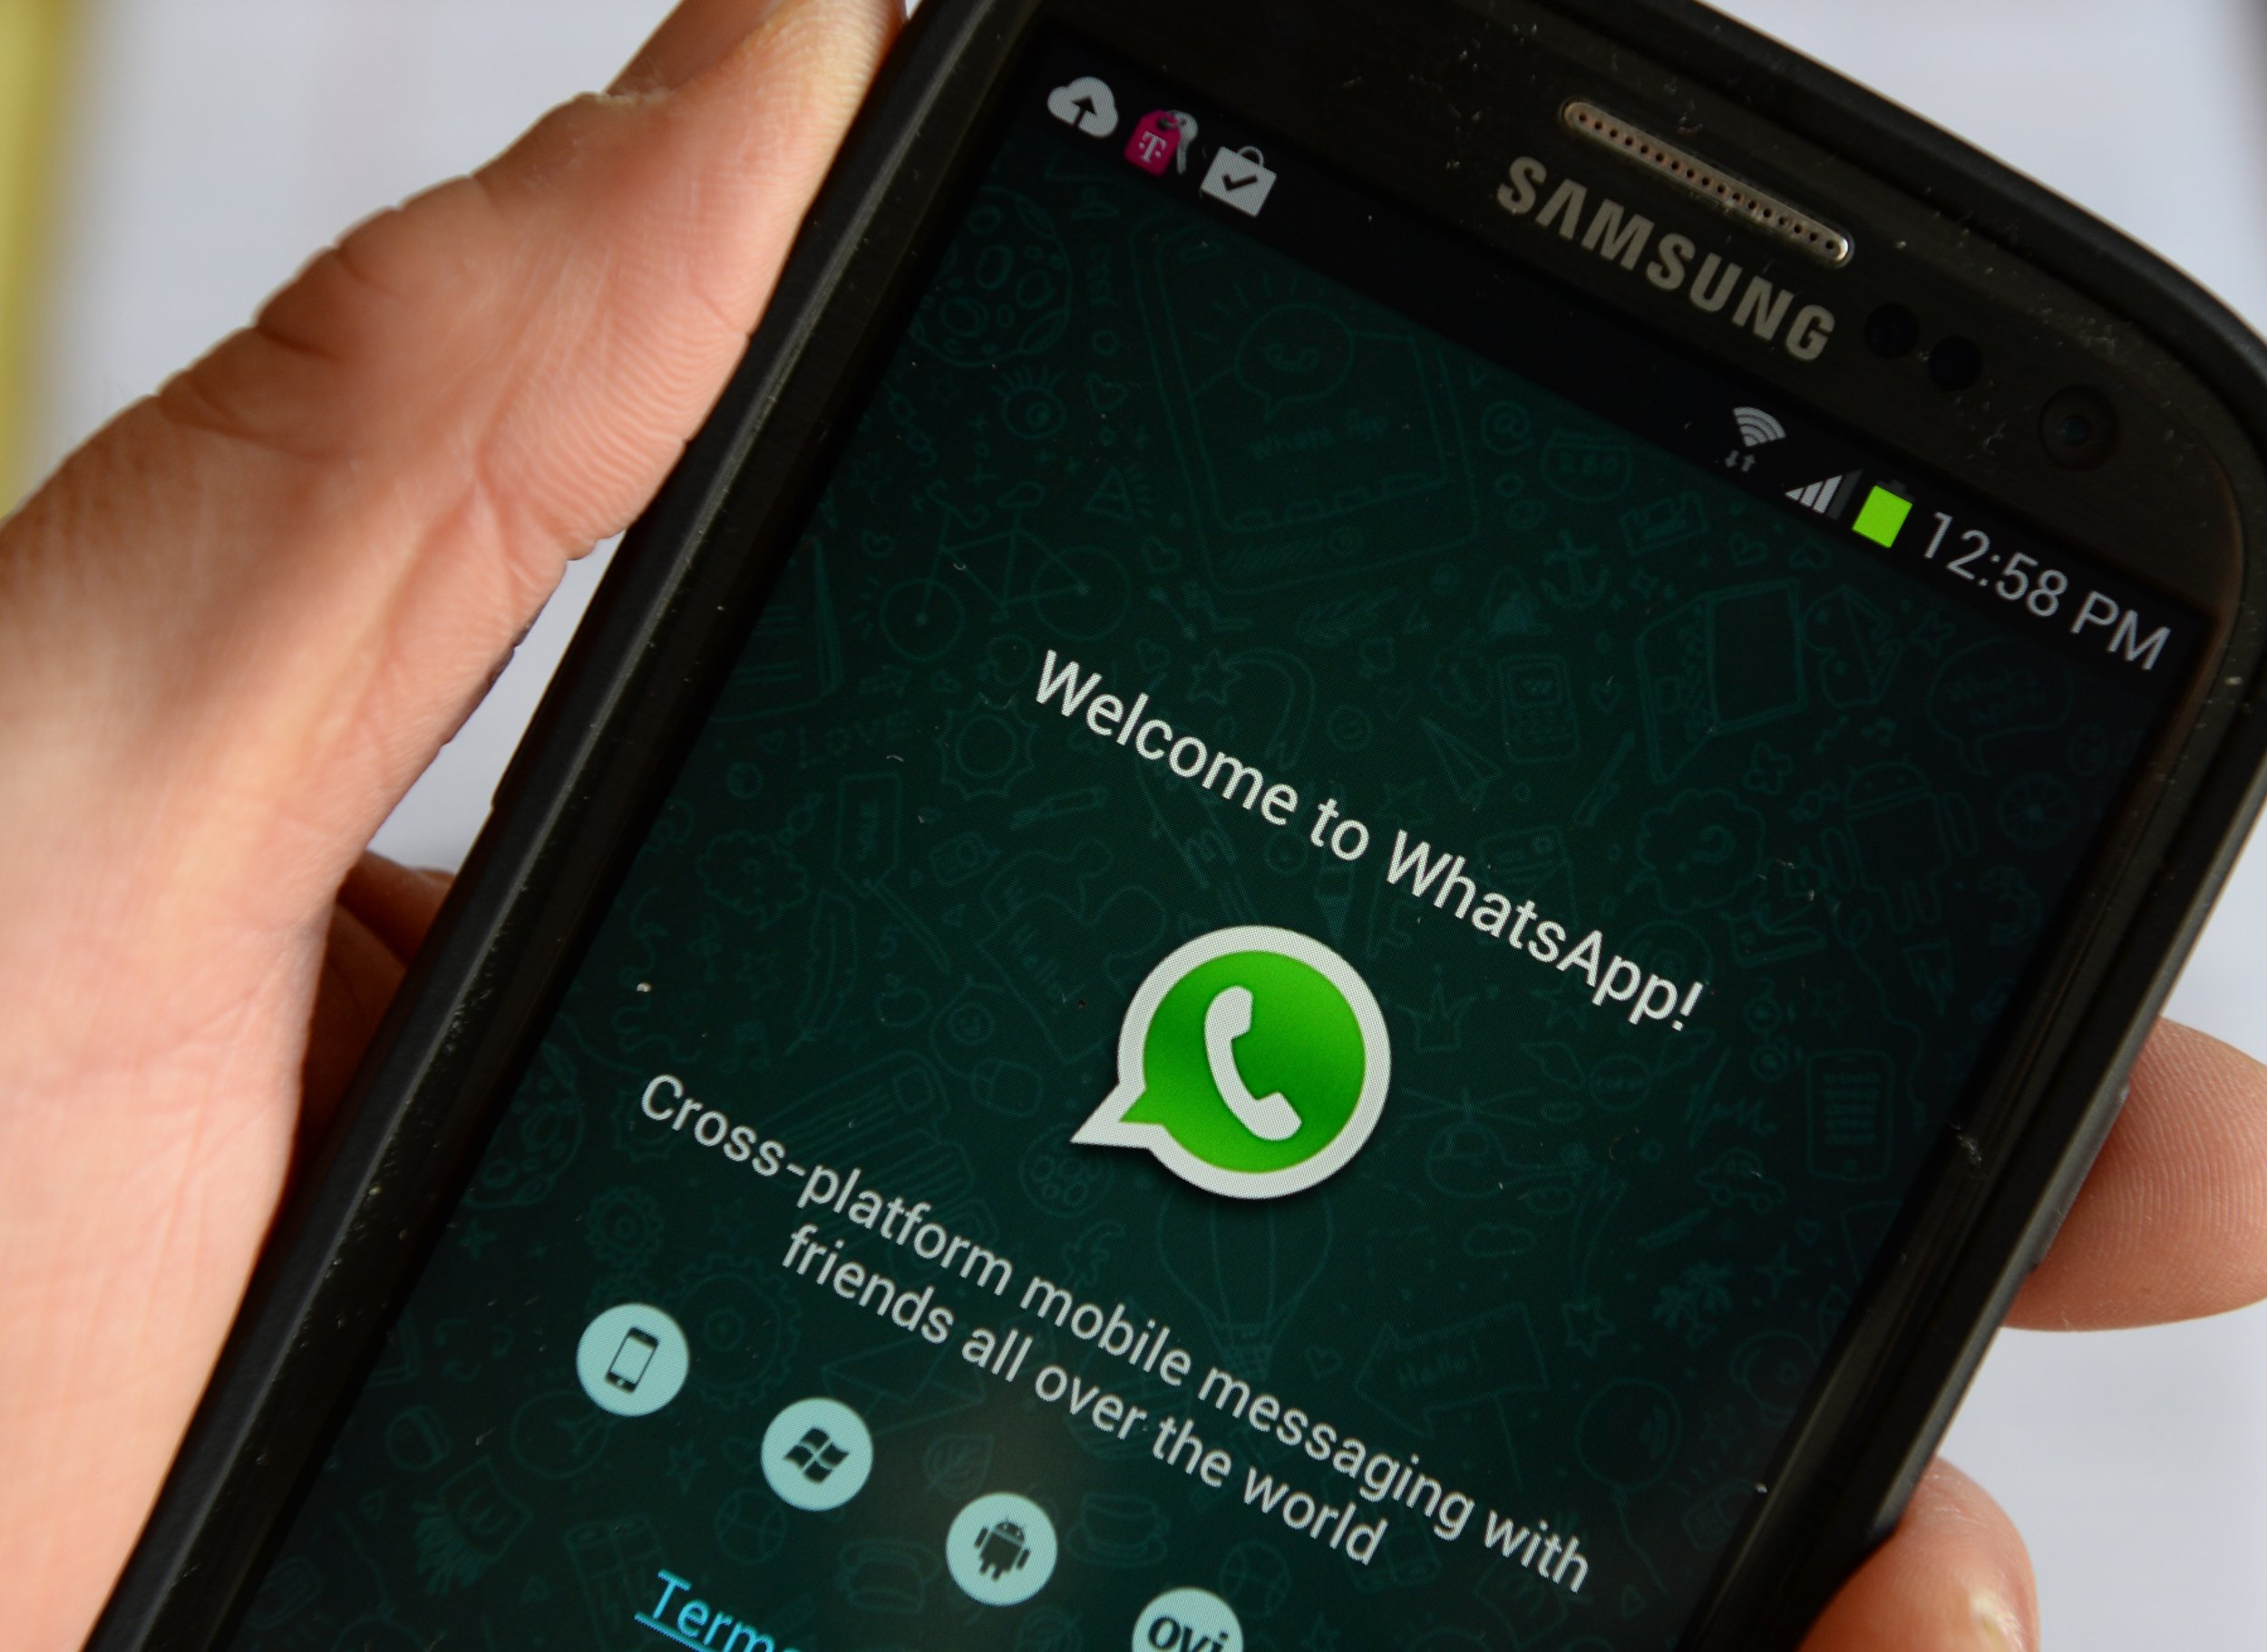 Logo of WhatsApp, the popular messaging service bought by Facebook for USD $19 billion, seen on a smartphone February 20, 2014 in New York. Facebook's deal for the red-hot mobile messaging service WhatsApp is a savvy strategic move for the world's biggest social network, even if the price tag is staggeringly high, analysts say. AFP PHOTO/Stan HONDA / AFP PHOTO / STAN HONDA (Photo credit should read STAN HONDA/AFP/Getty Images)